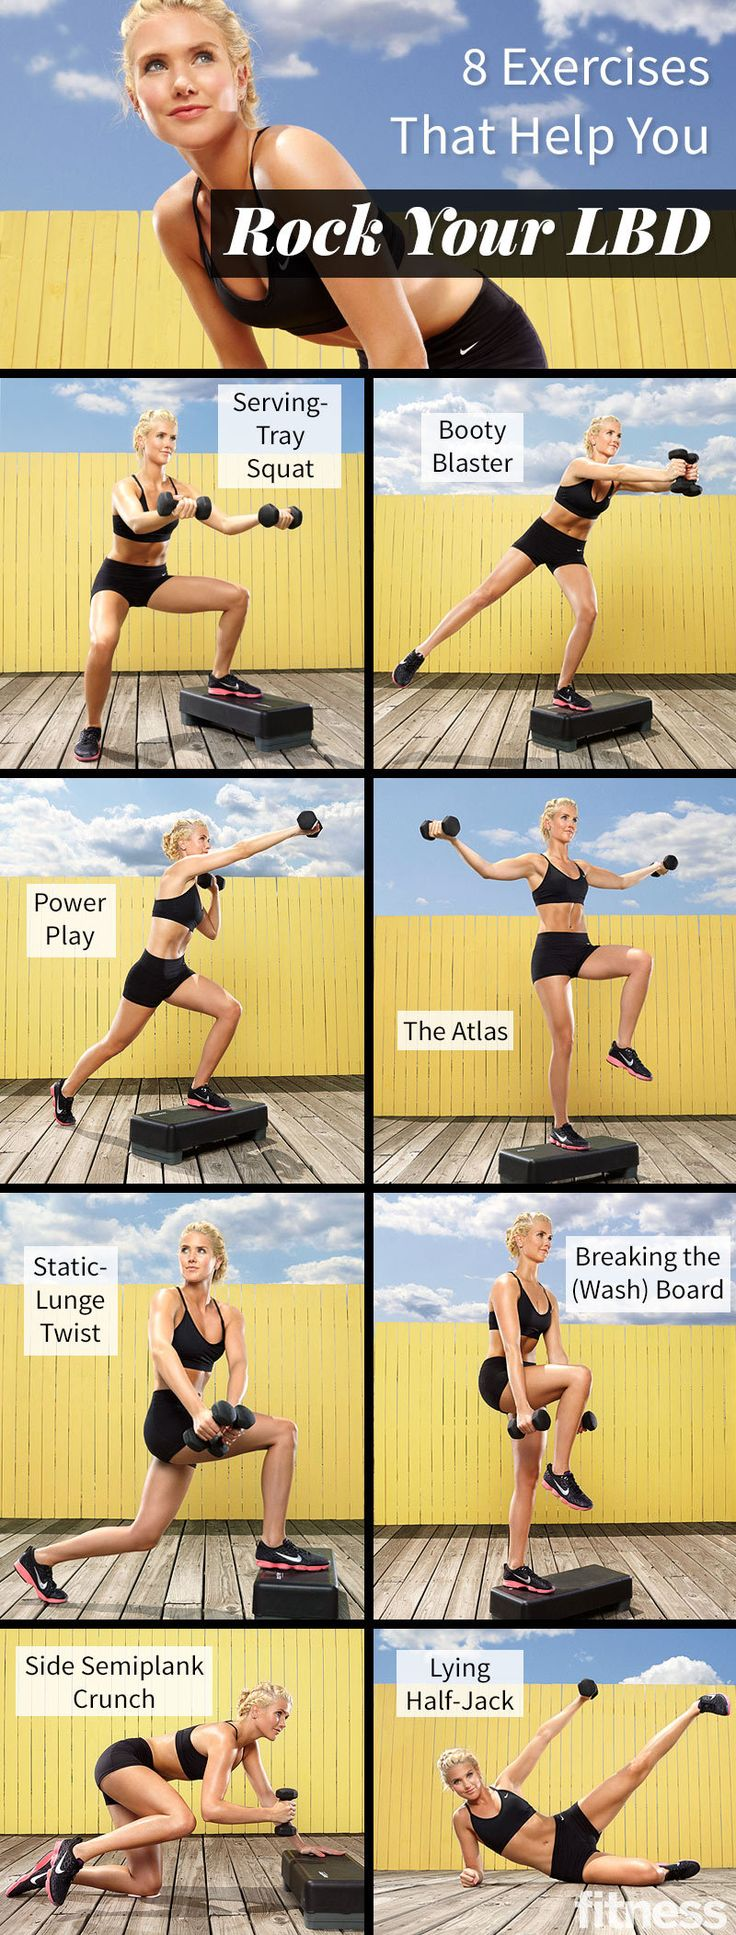 8 Exercises That Help You Rock Your LBD (full body circuit with weights)